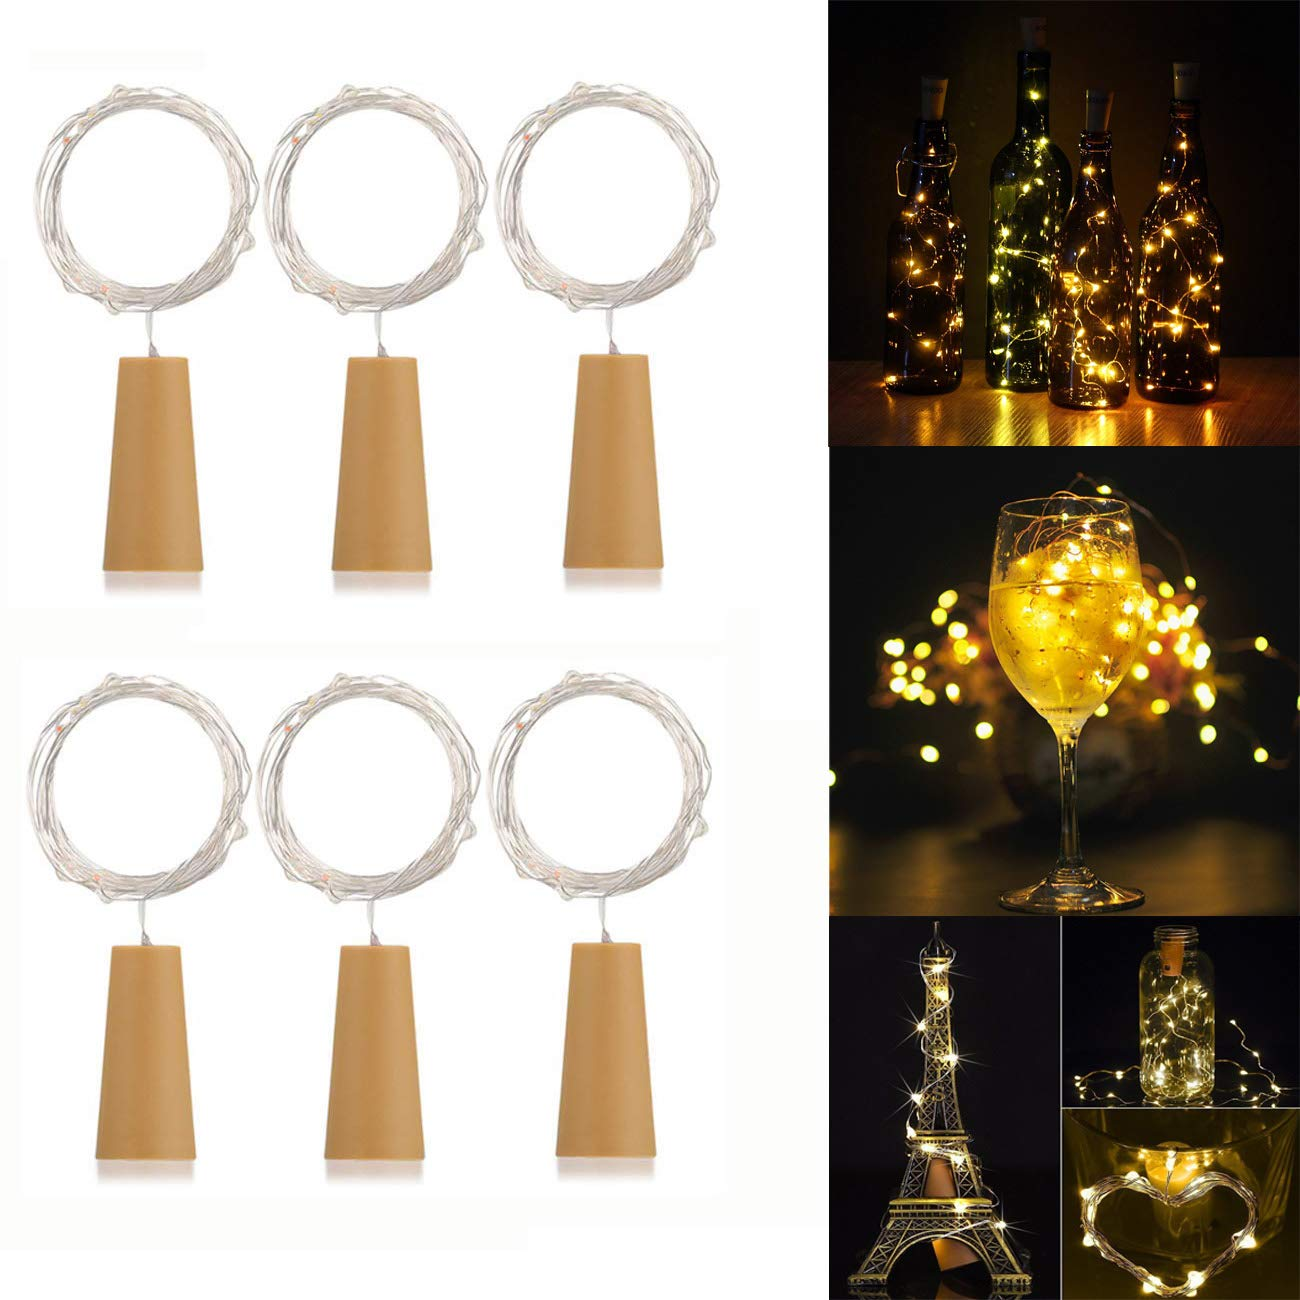 6 Pack 20-LEDs Spark Wine Bottle Light, Cork Shape Battery Copper Wire String Lights for Bottle DIY, Christmas, Wedding and Party Décor - Warm White ATP